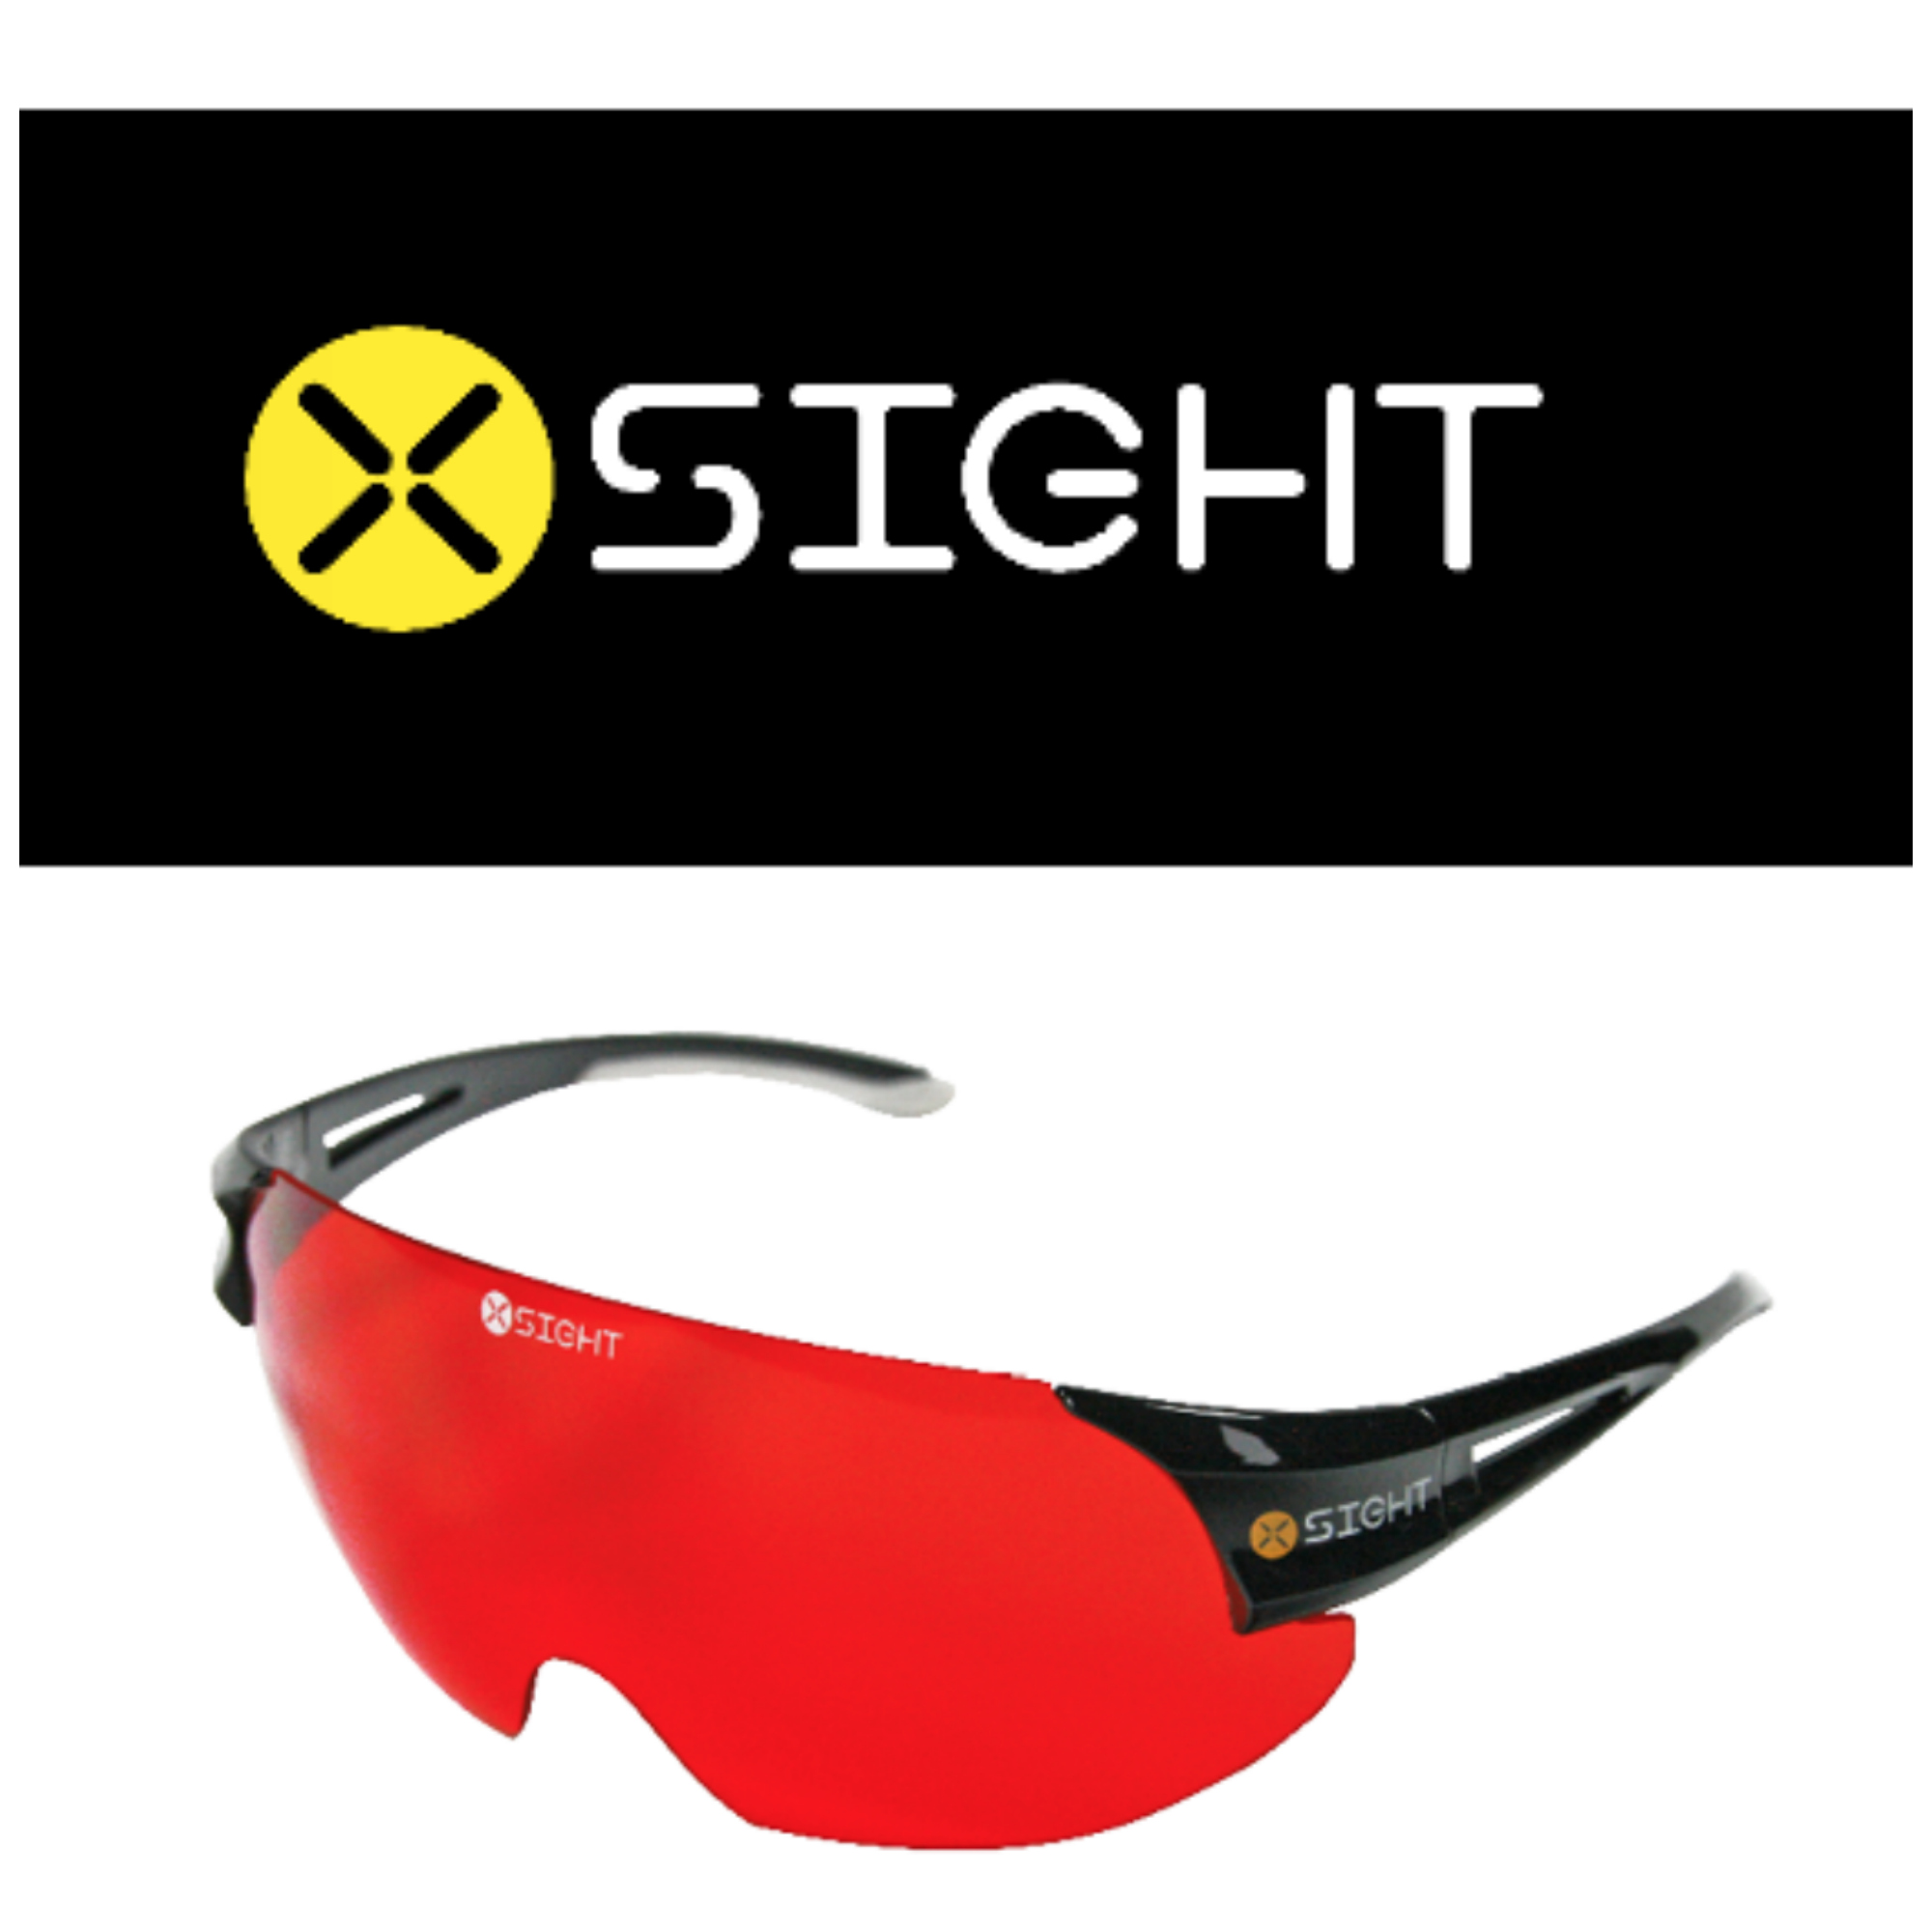 X Sight Archery - Archery Glasses35% Discount